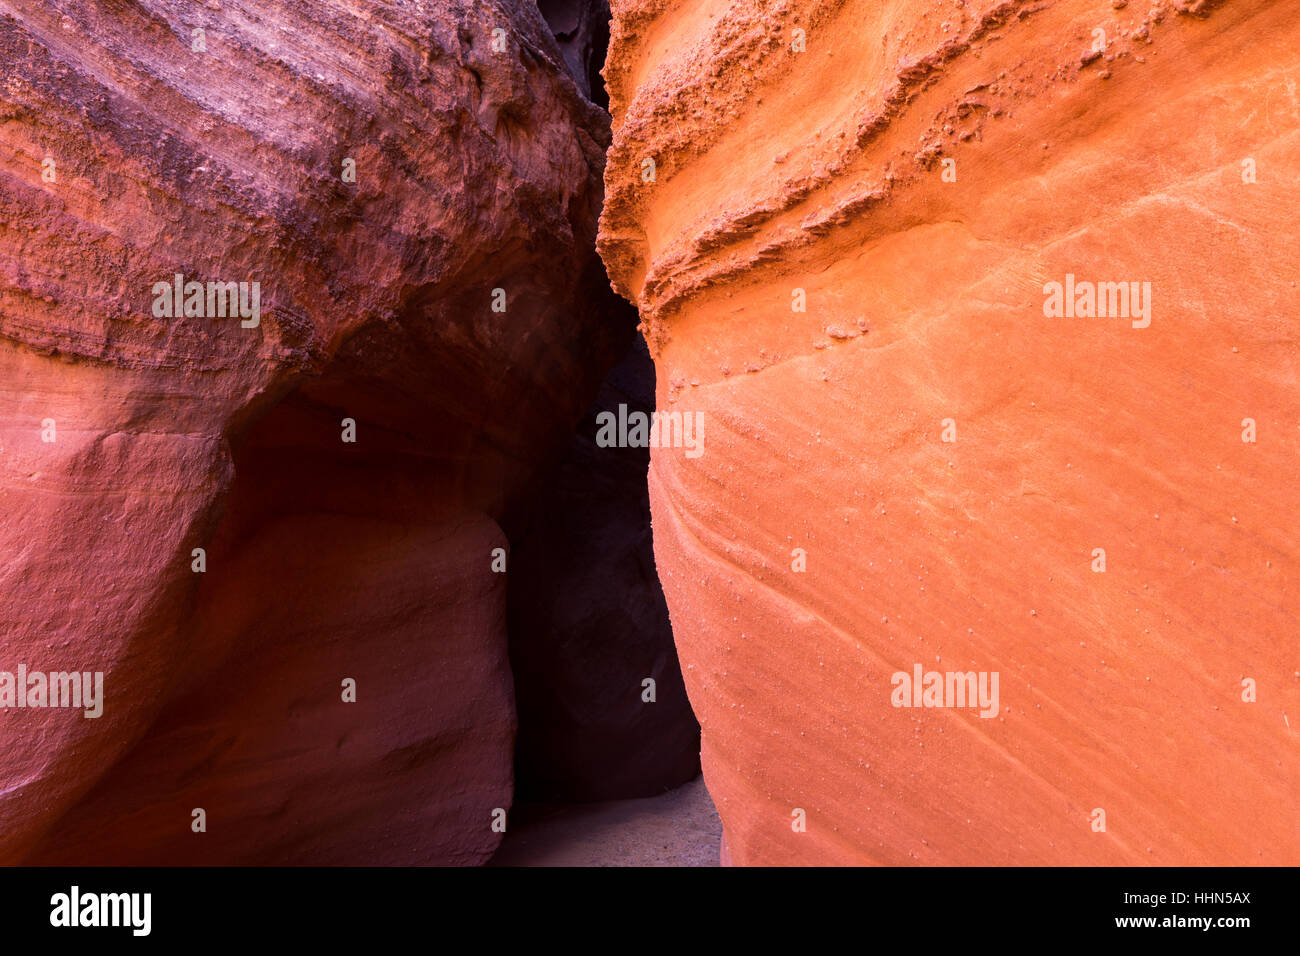 Spooky Slot Canyon creating abstract patterns in the Navajo sandstone. Grand Staircase-Escalante National Monument, Stock Photo